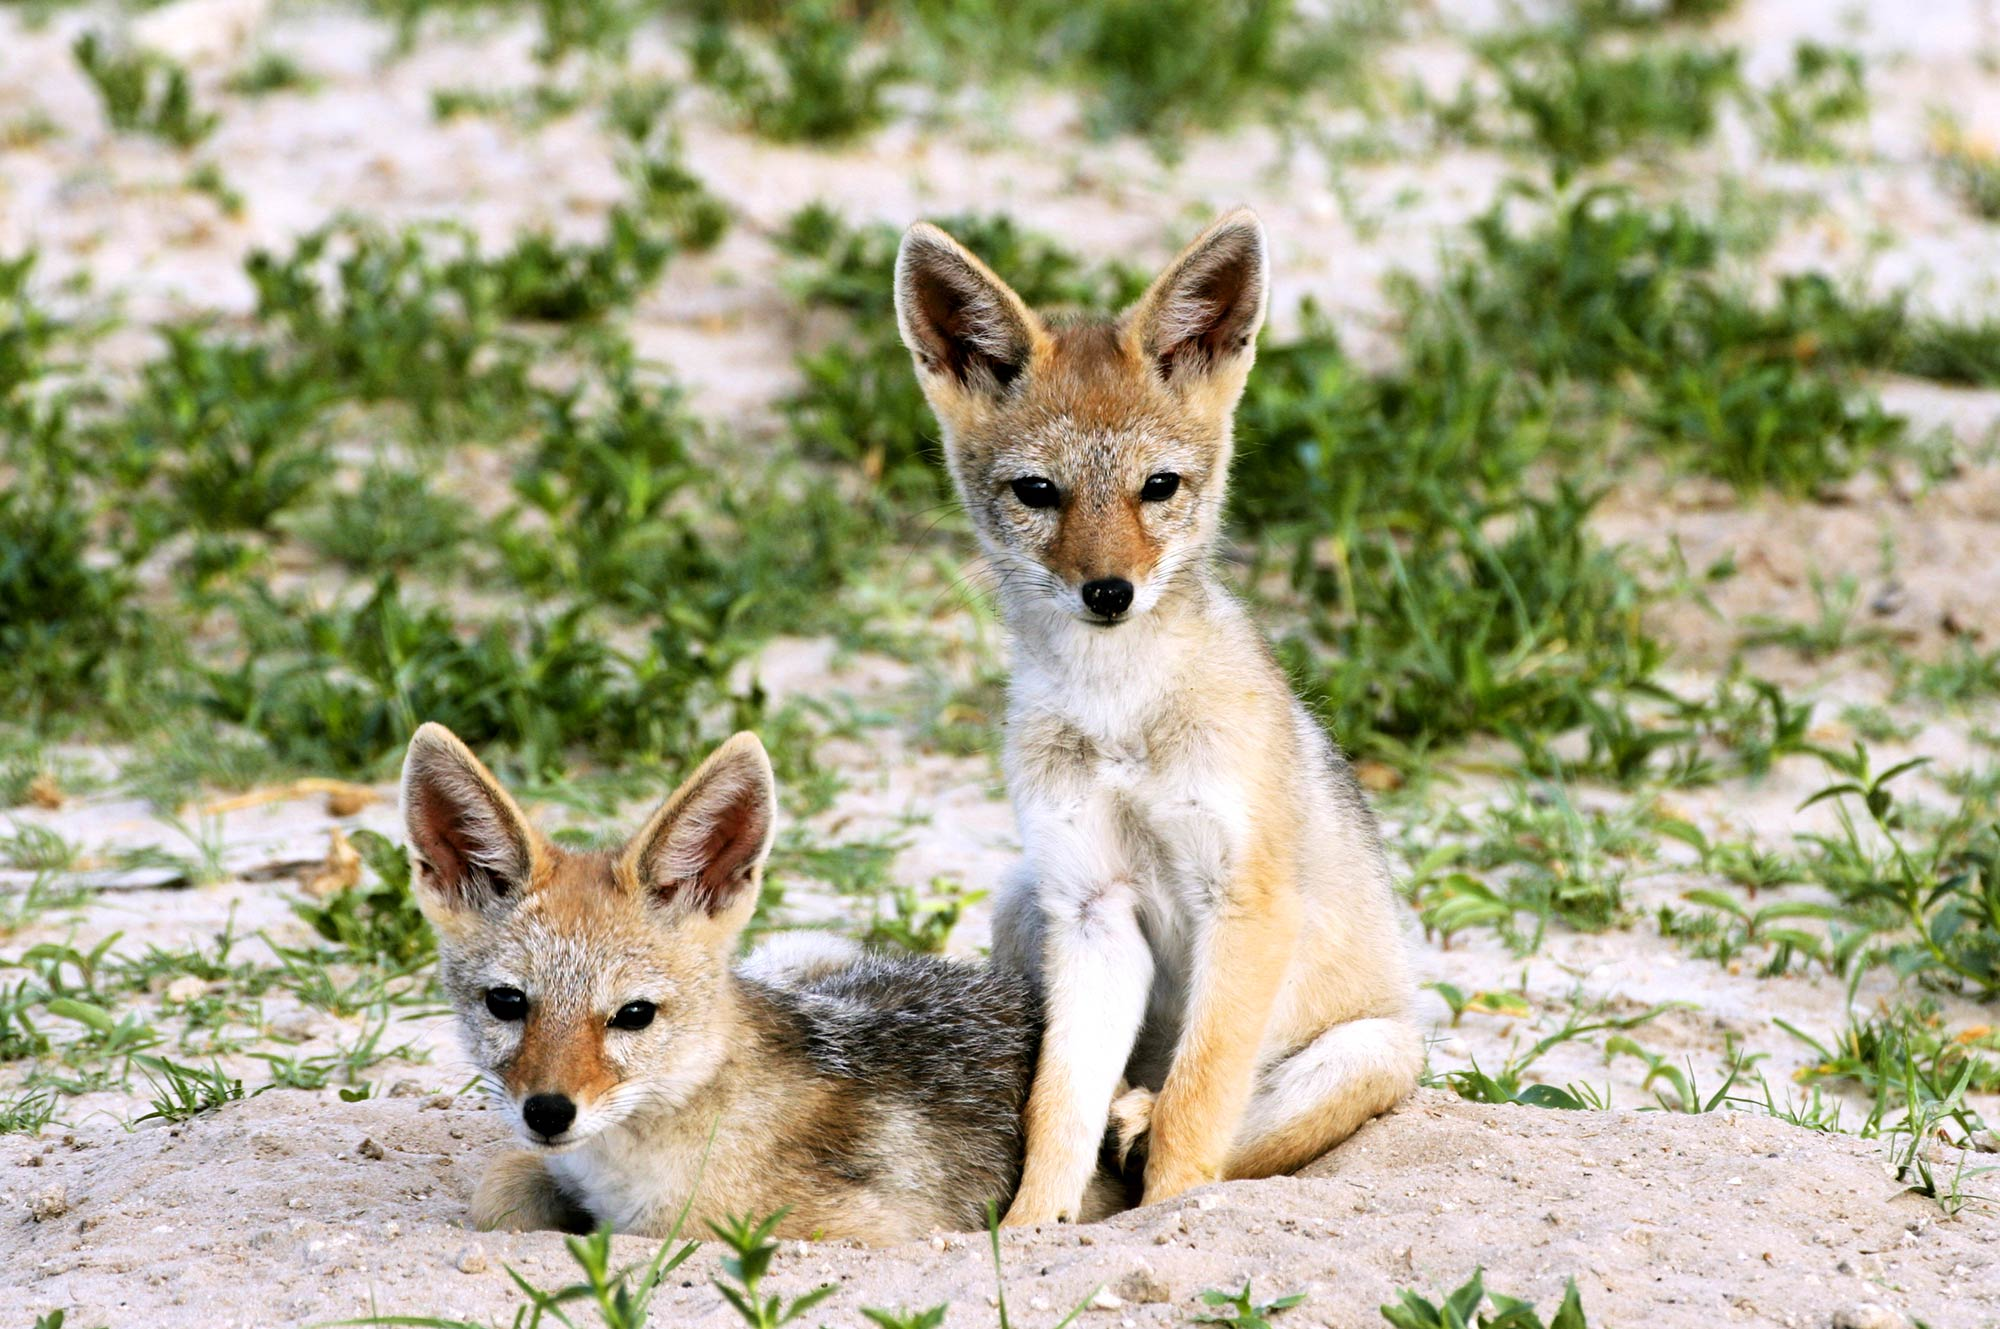 small foxes in kruger park during safari